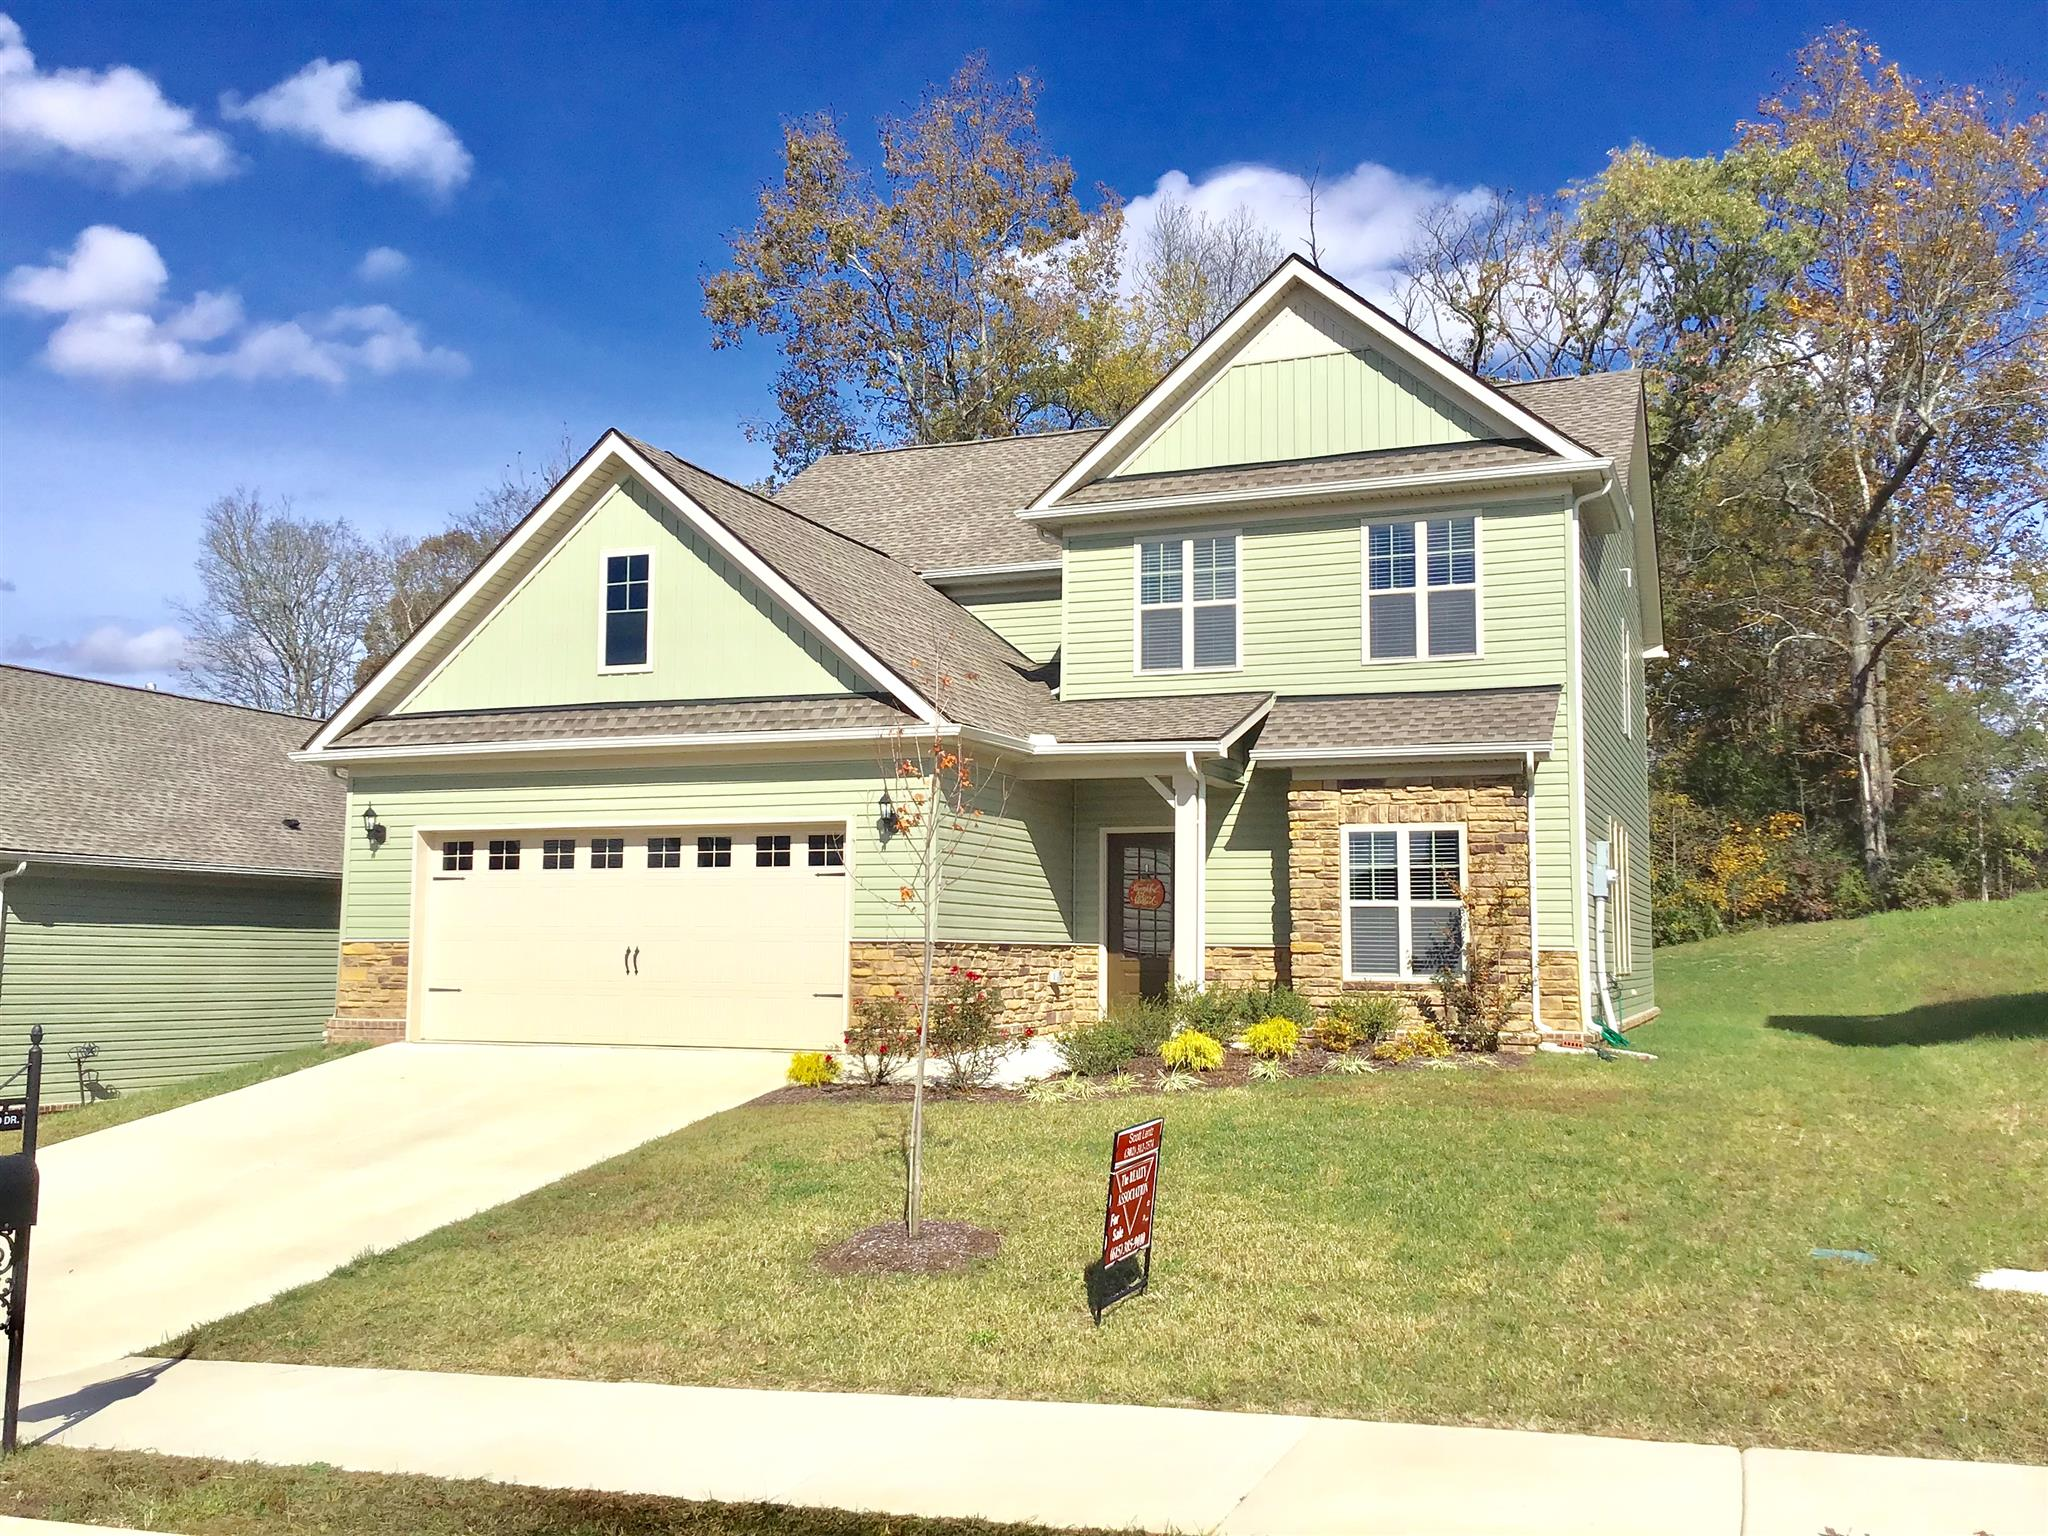 1036 Keeneland Dr, Spring Hill, TN 37174 - Spring Hill, TN real estate listing